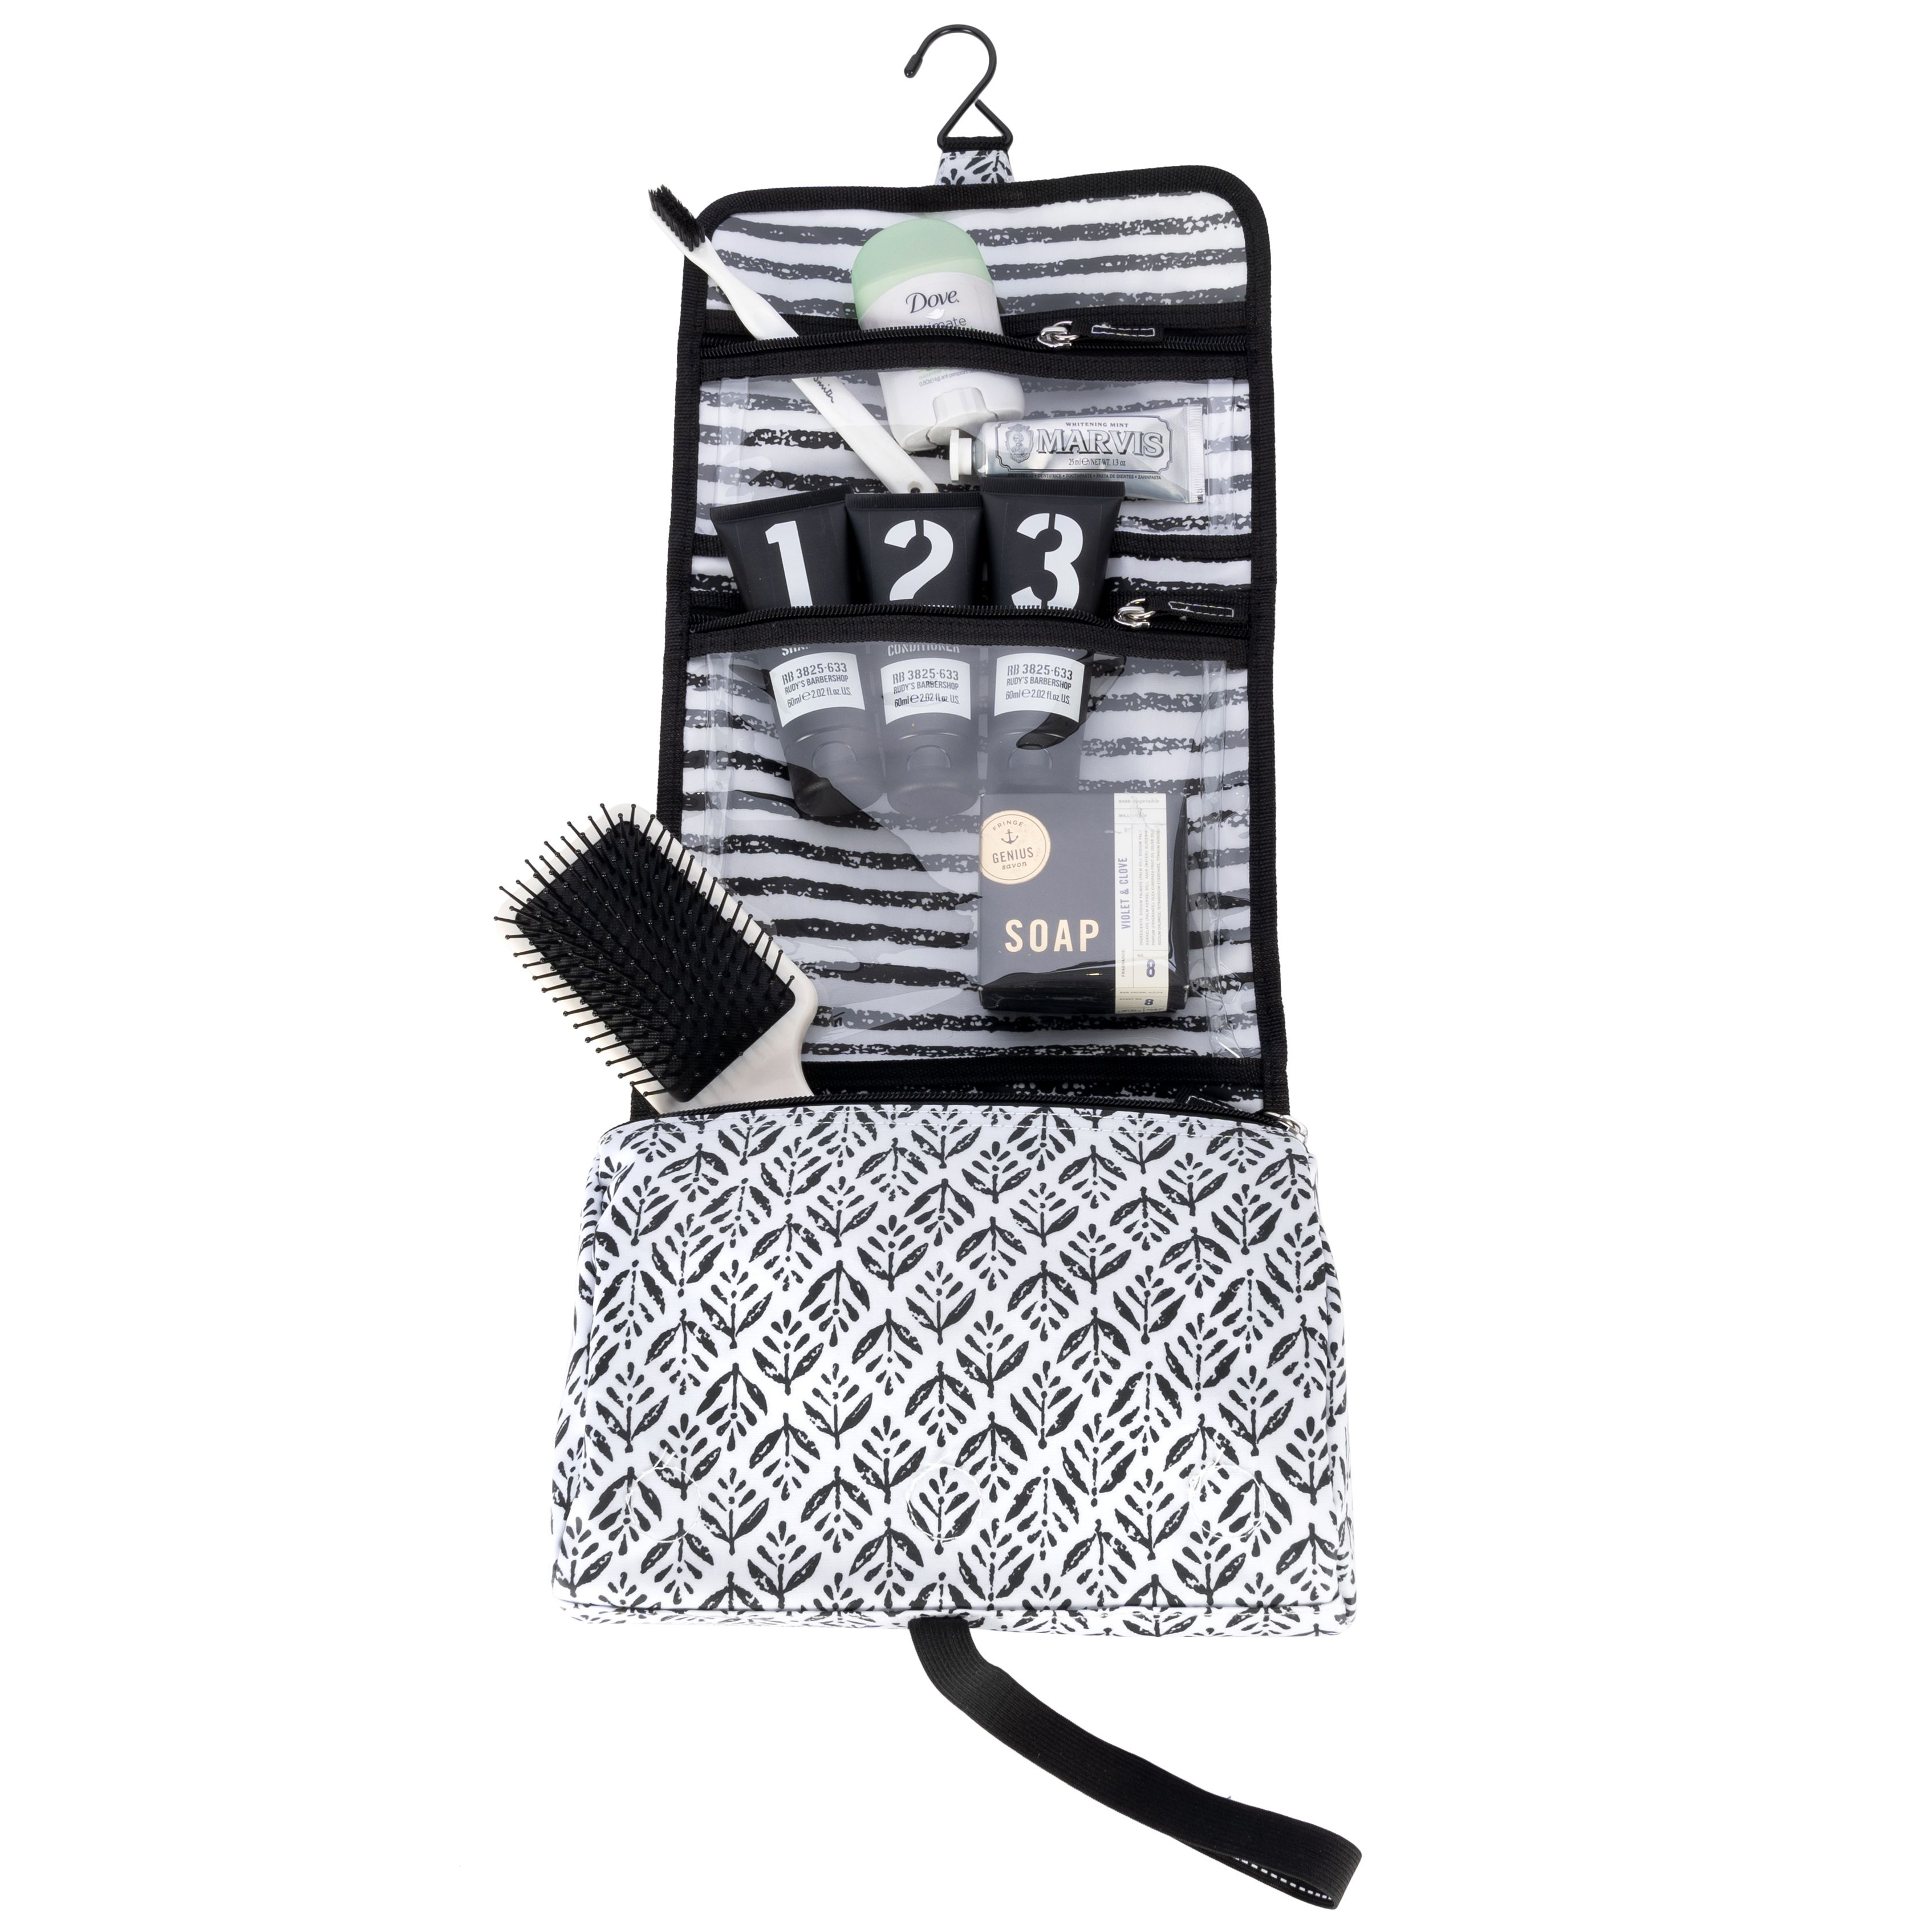 SCOUT- Beauty Burrito make up bag- Ivy | SCOUT | Makeup, Bags, Beauty